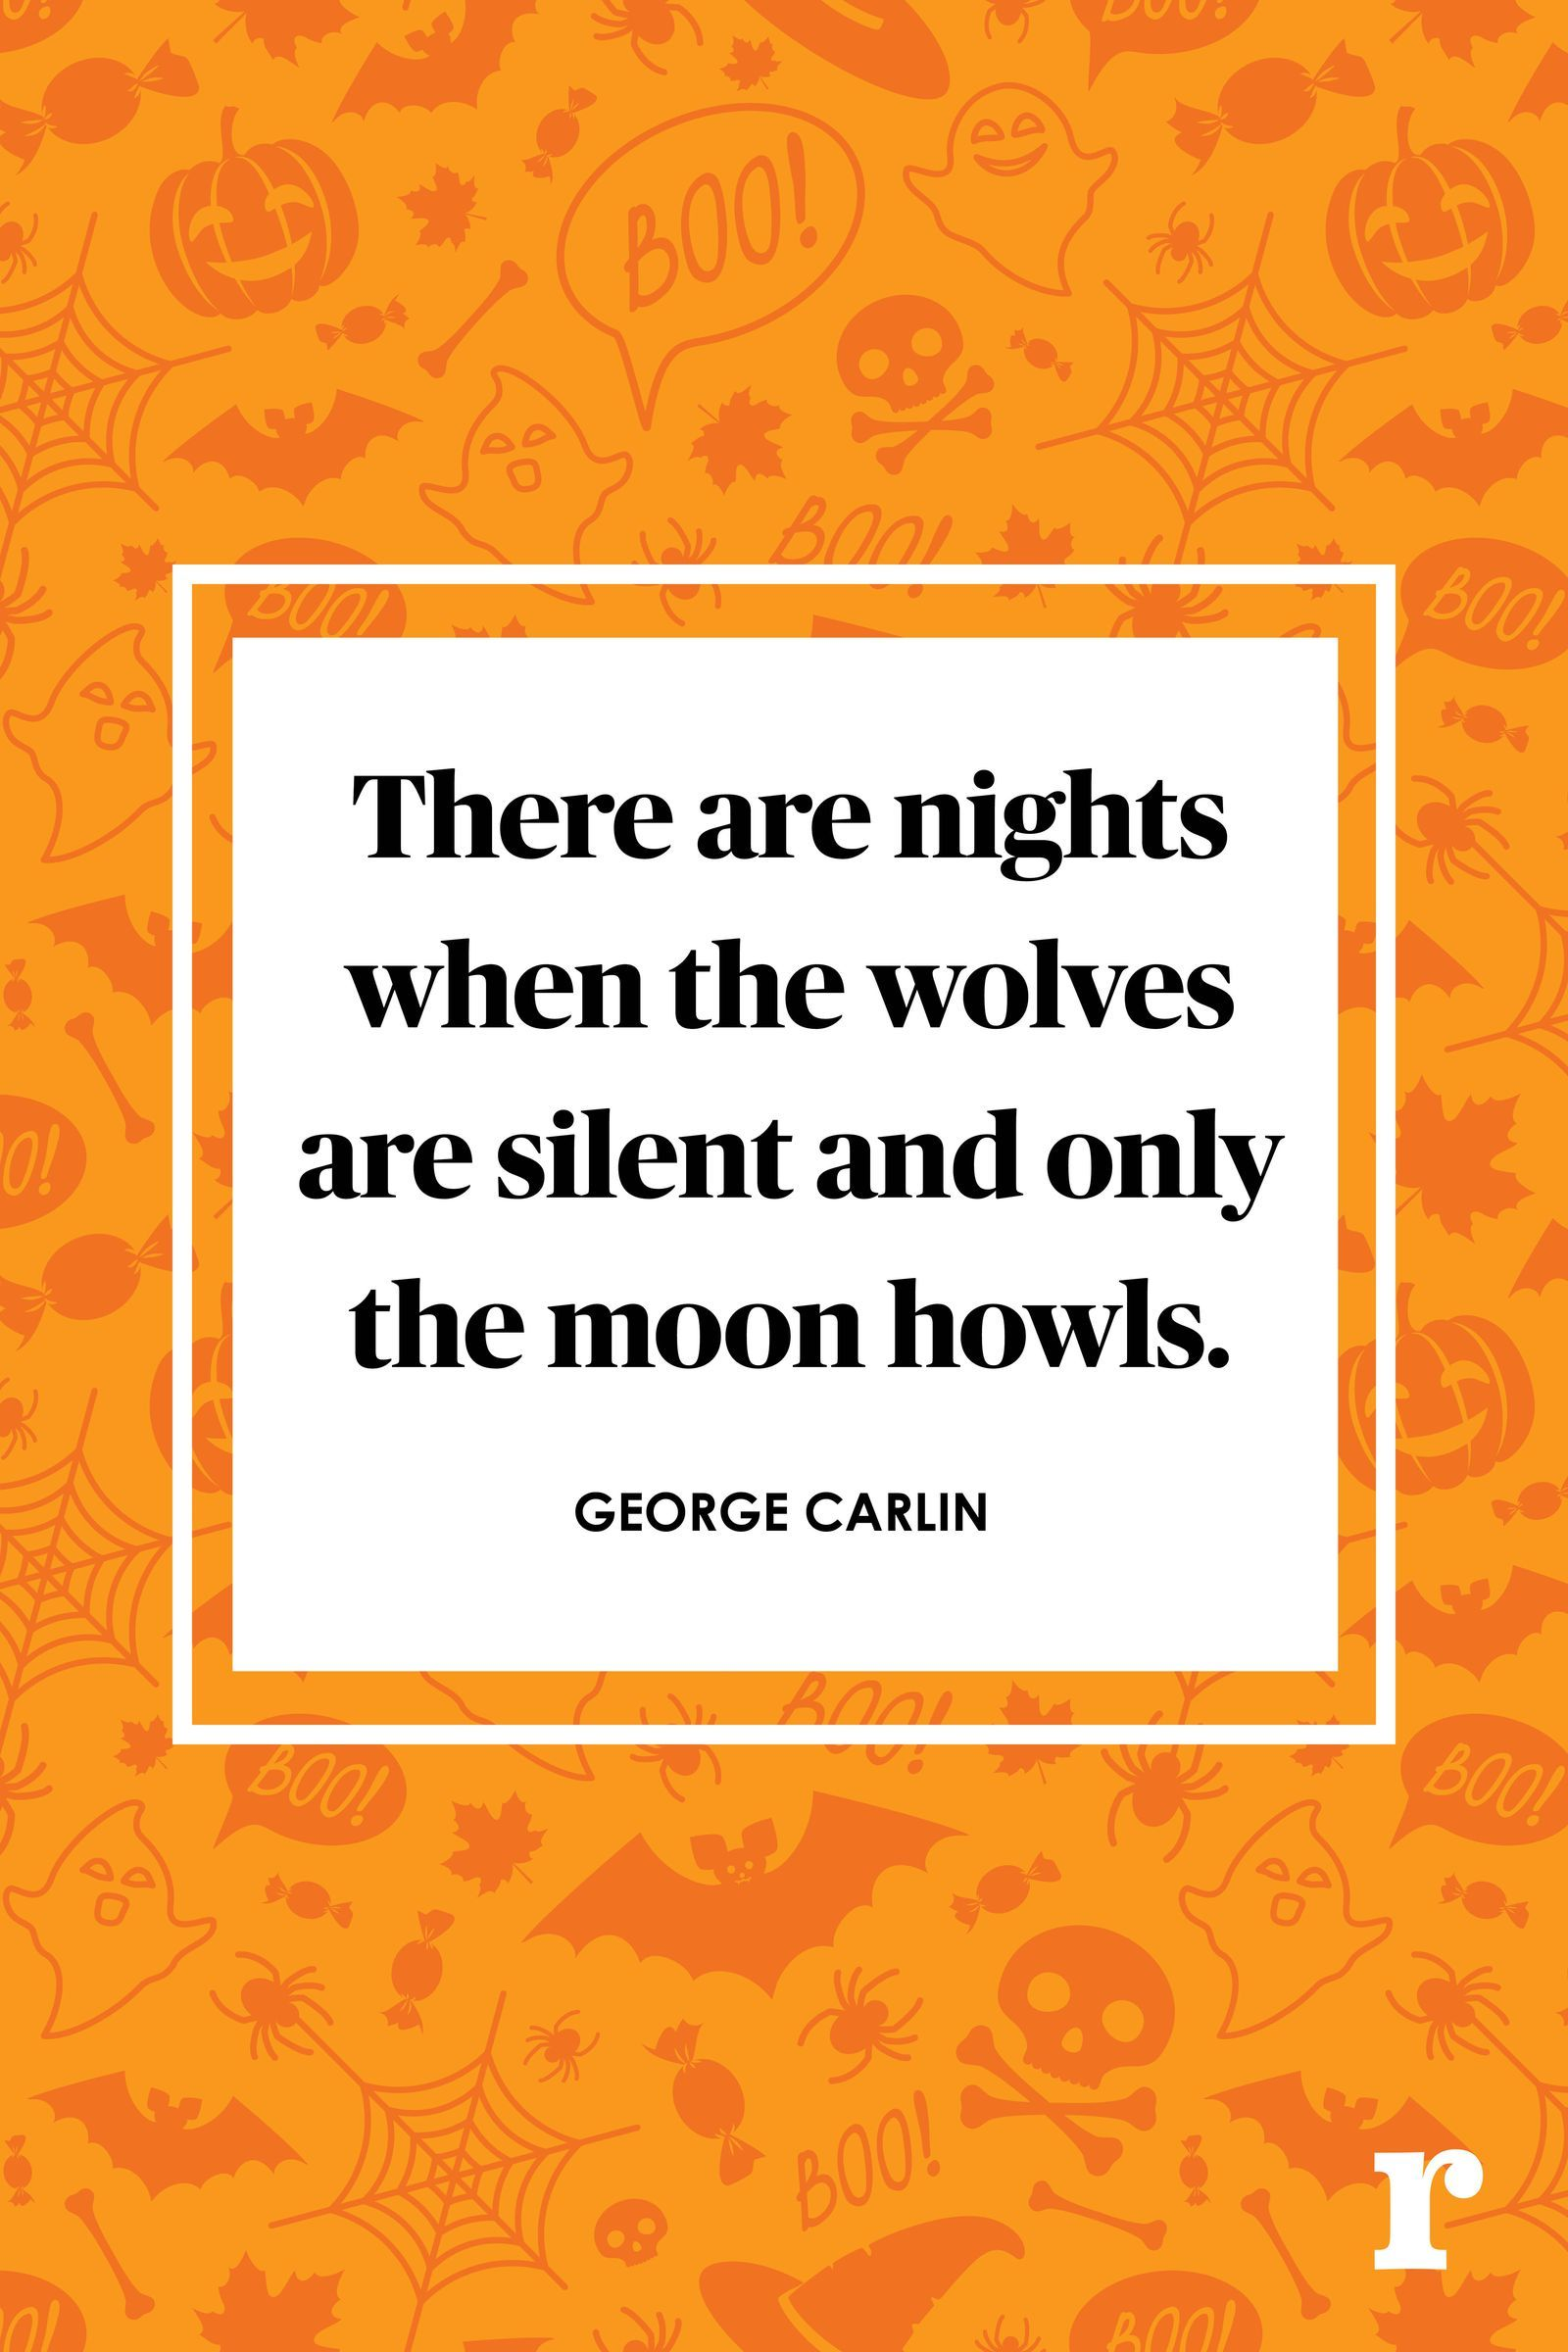 16 Halloween Quotes to Celebrate the Spookiest Night of